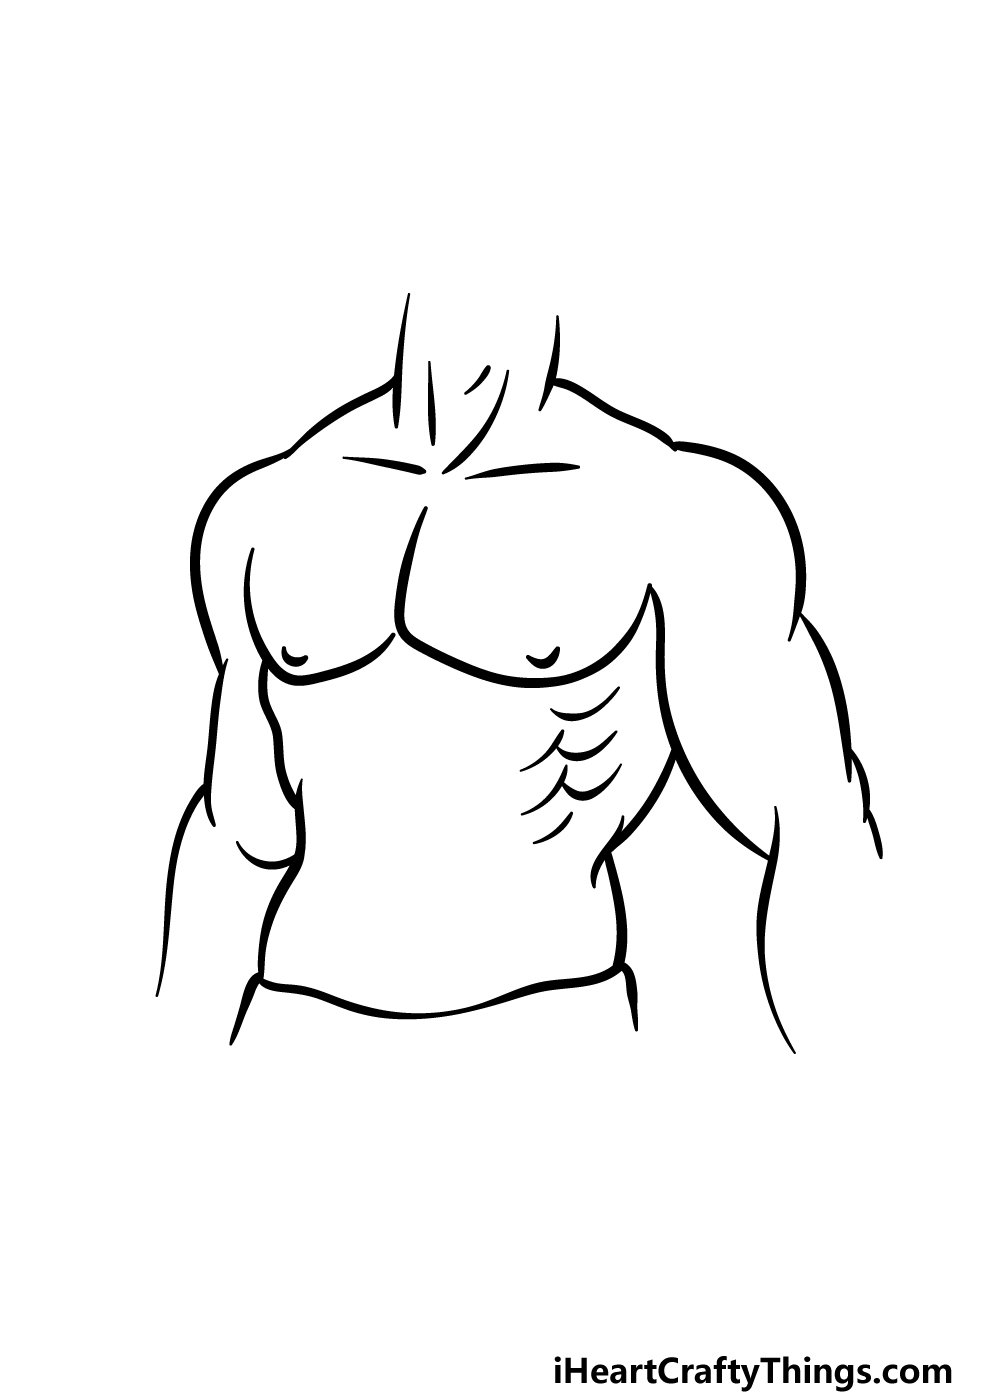 drawing abs step 4